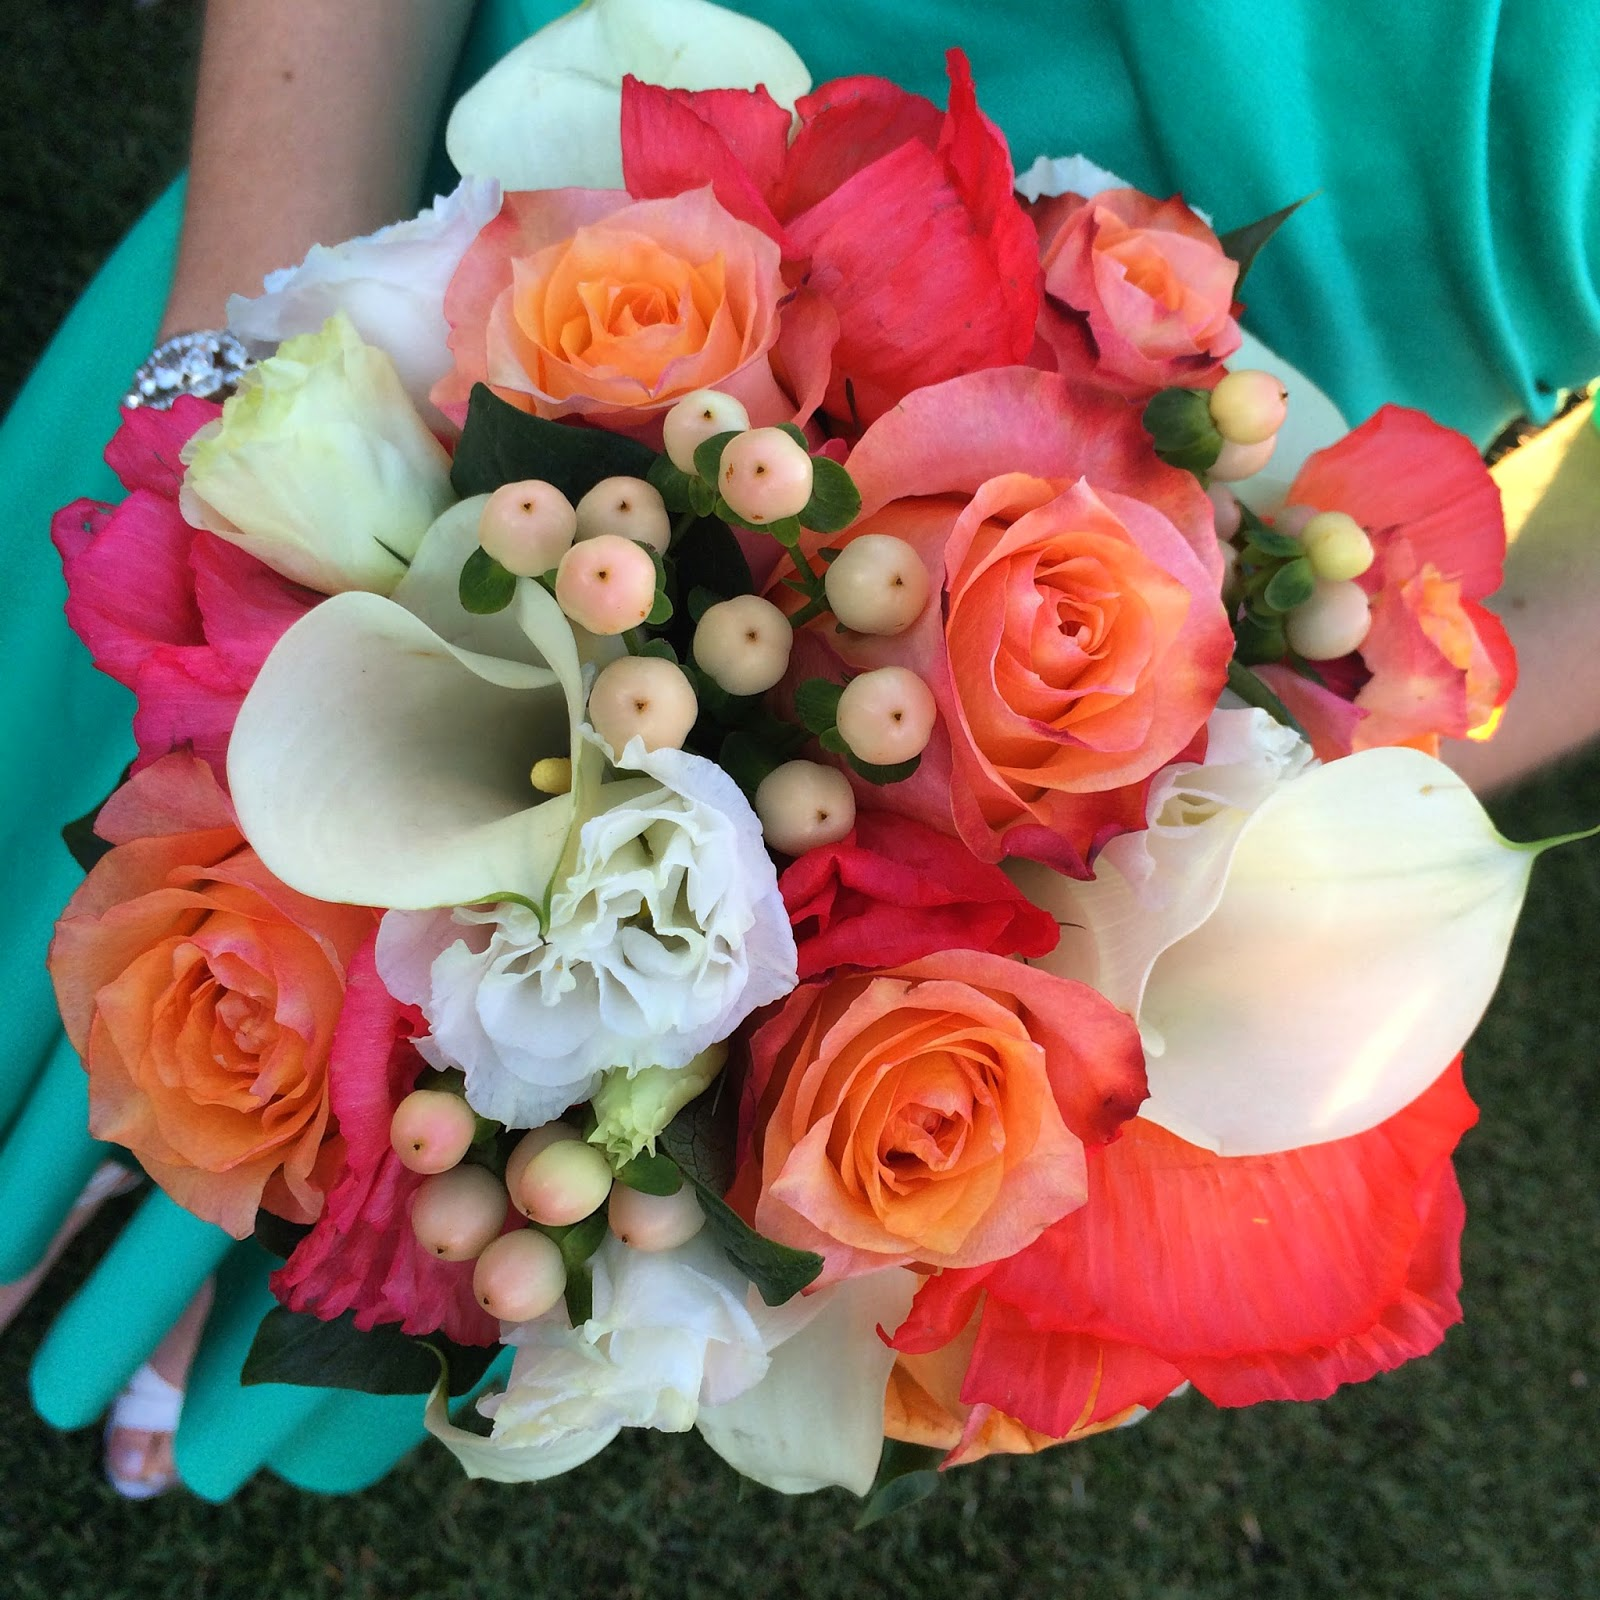 Urban flower bri and ians wedding flowers bridesmaids she wanted whitecoral bouquets she didnt really specify any flower types just left jules with the colour of the bridemaids dresses a mightylinksfo